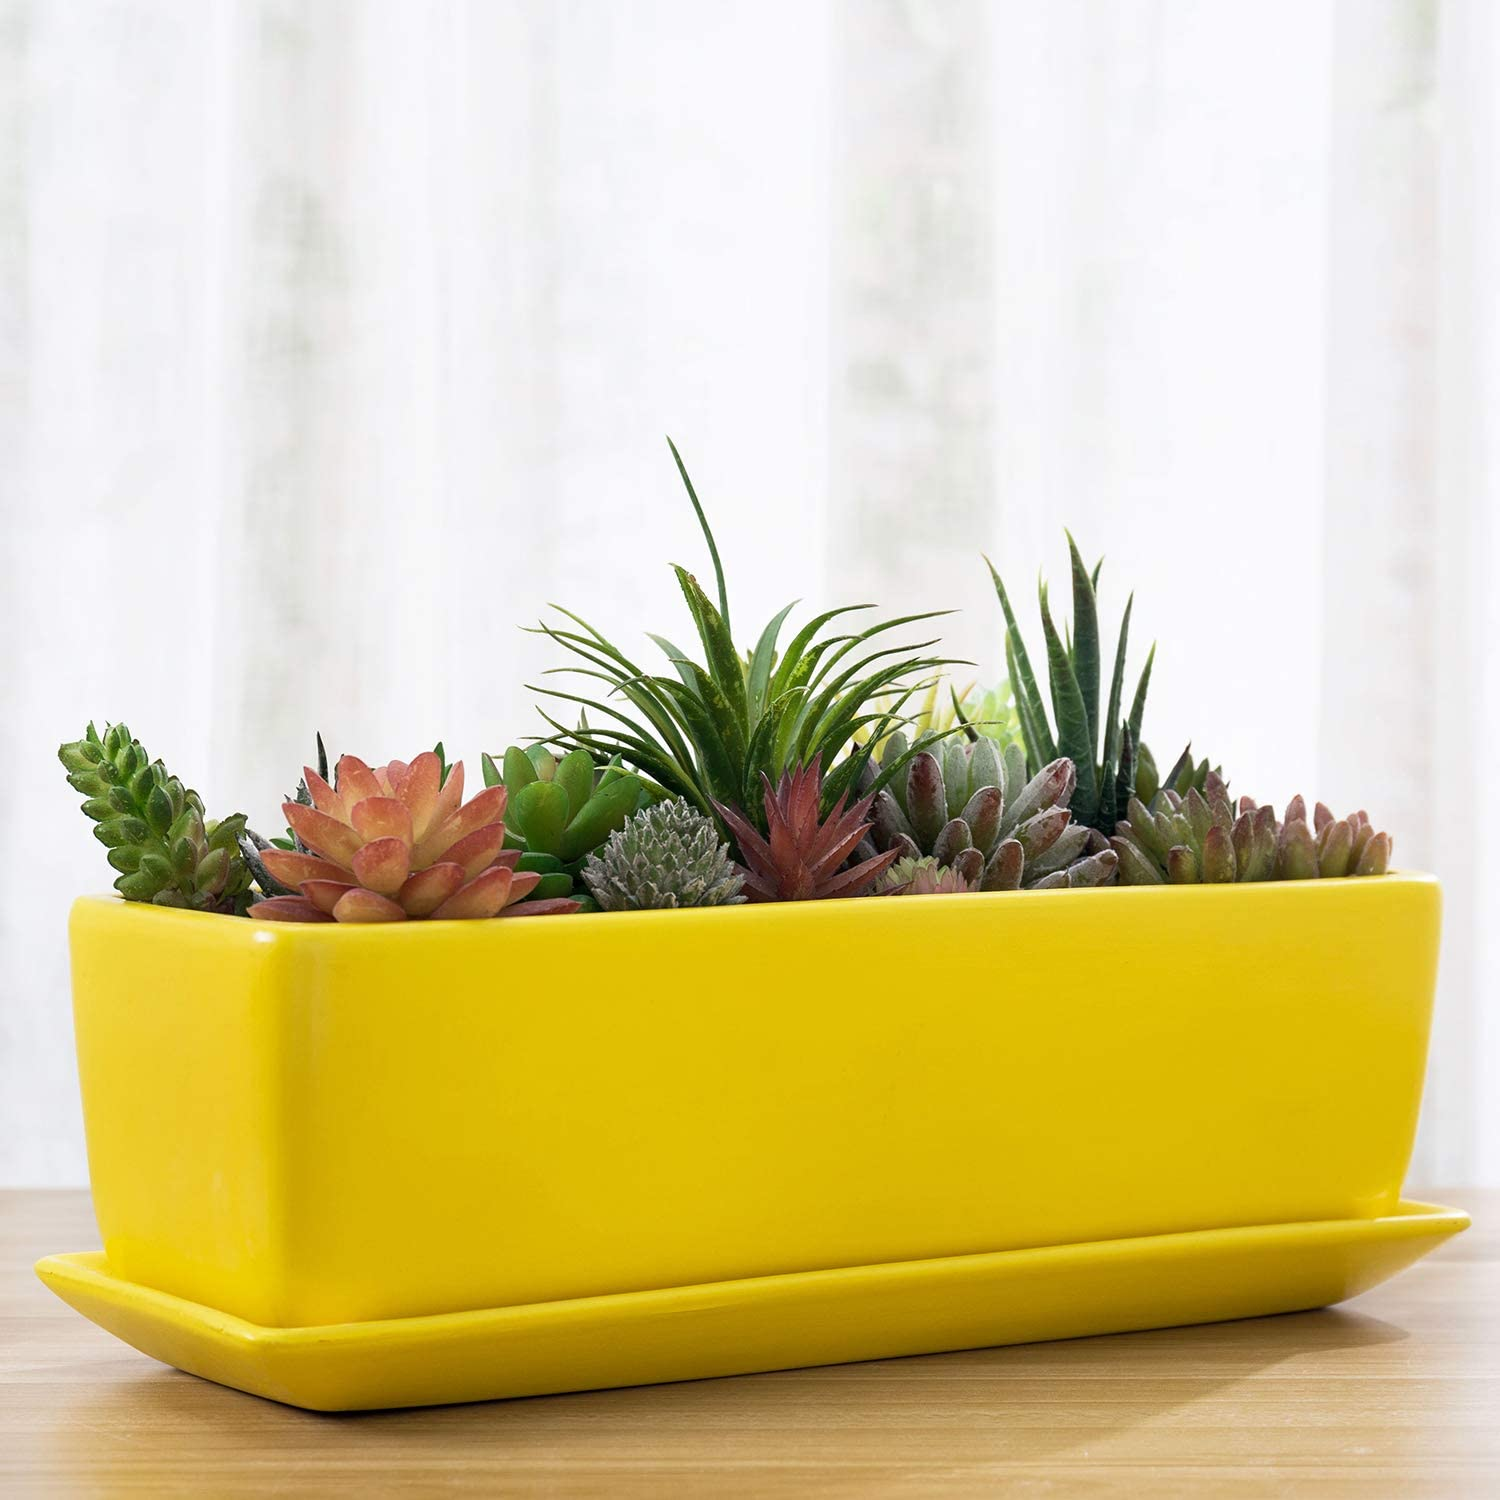 MyGift 14-inch Yellow Rectangular Modern Ceramic Succulent Window Box Planter Pot with Saucer